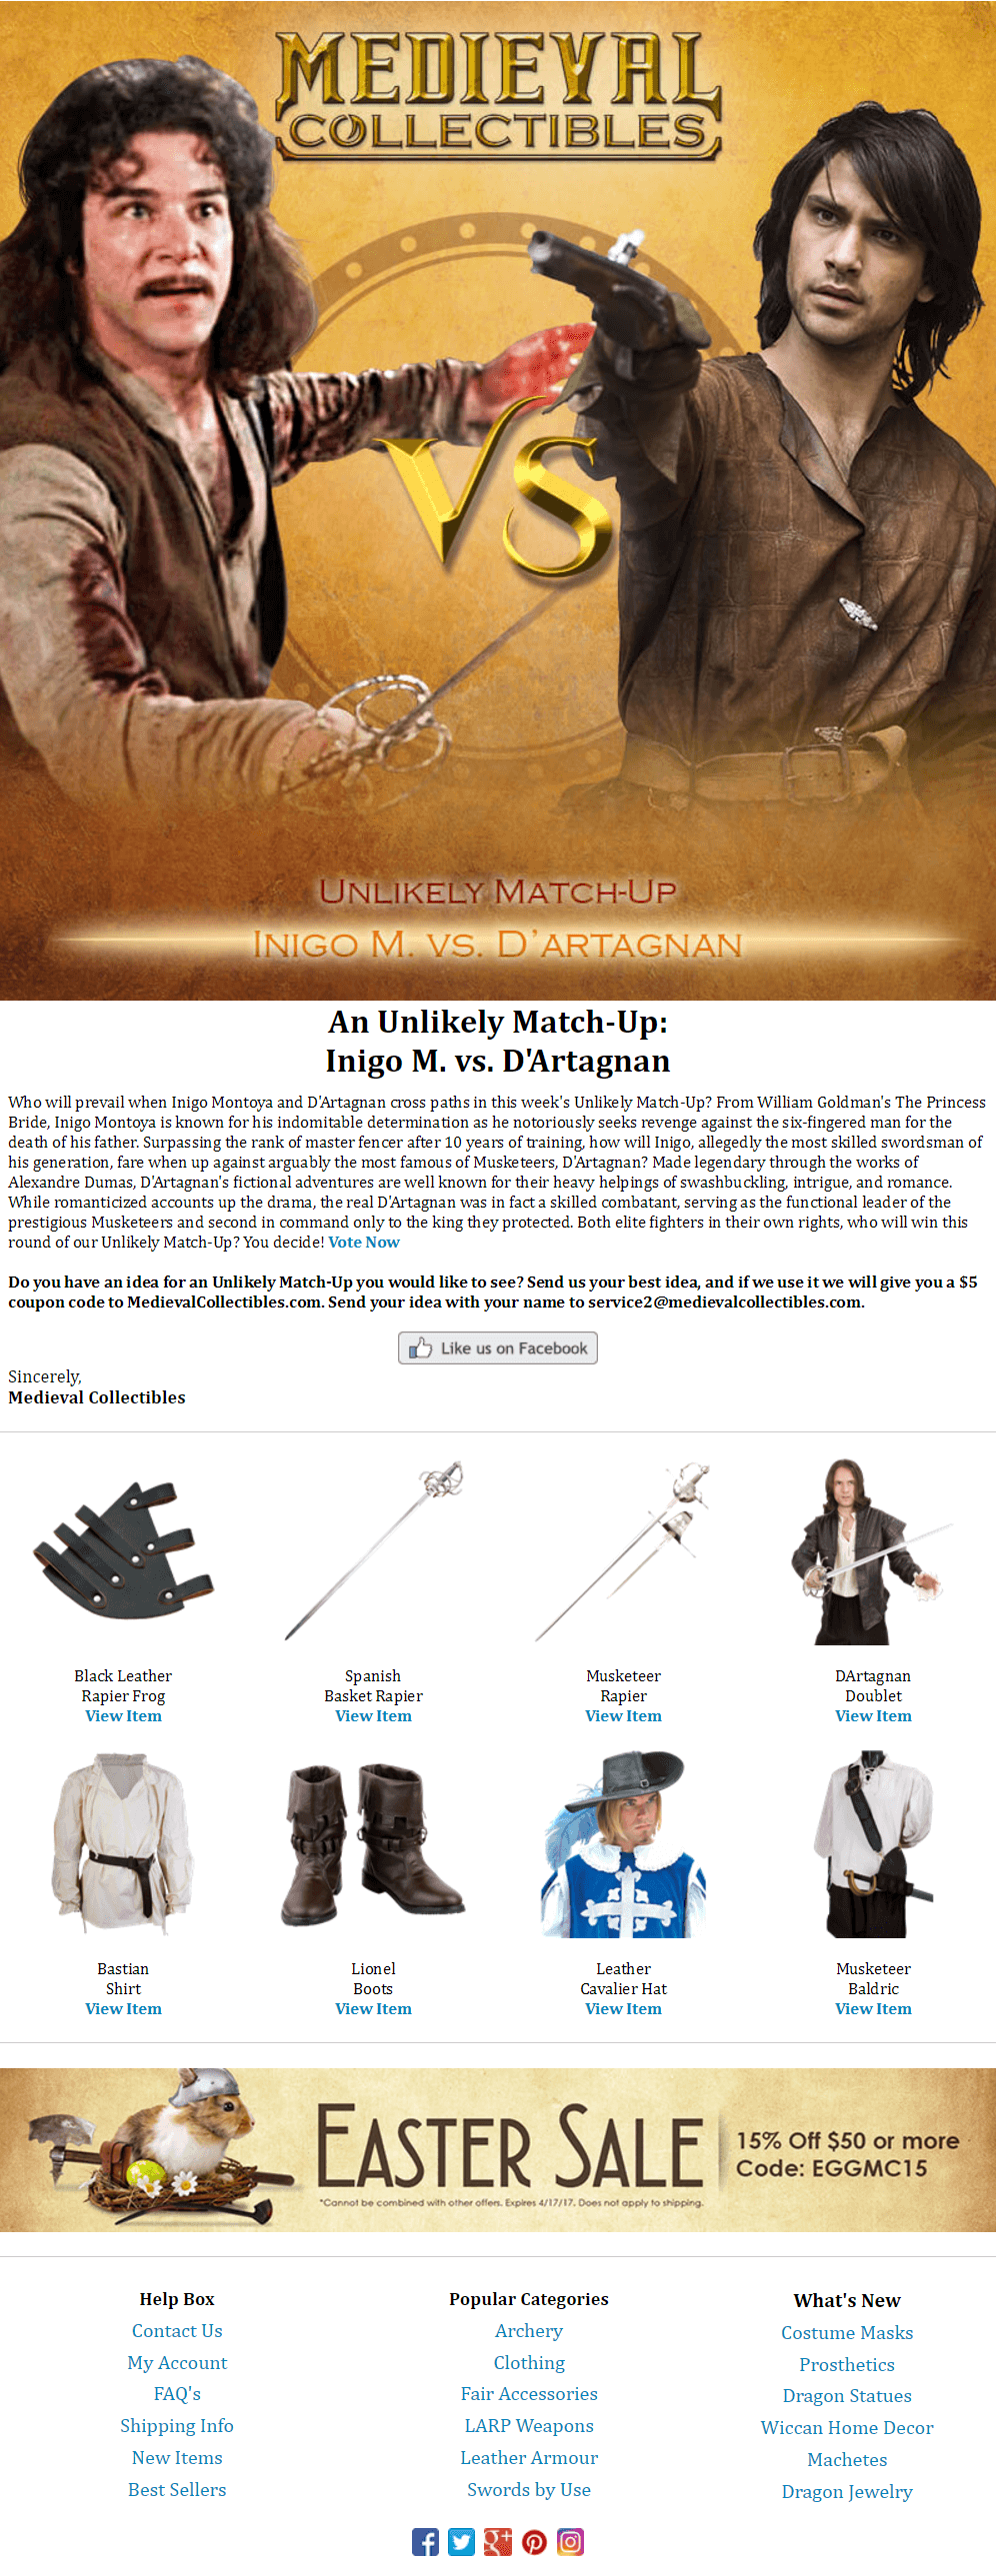 Great Email Marketing: Medieval Collectible's Unlikely Matchups | Disruptive Advertising